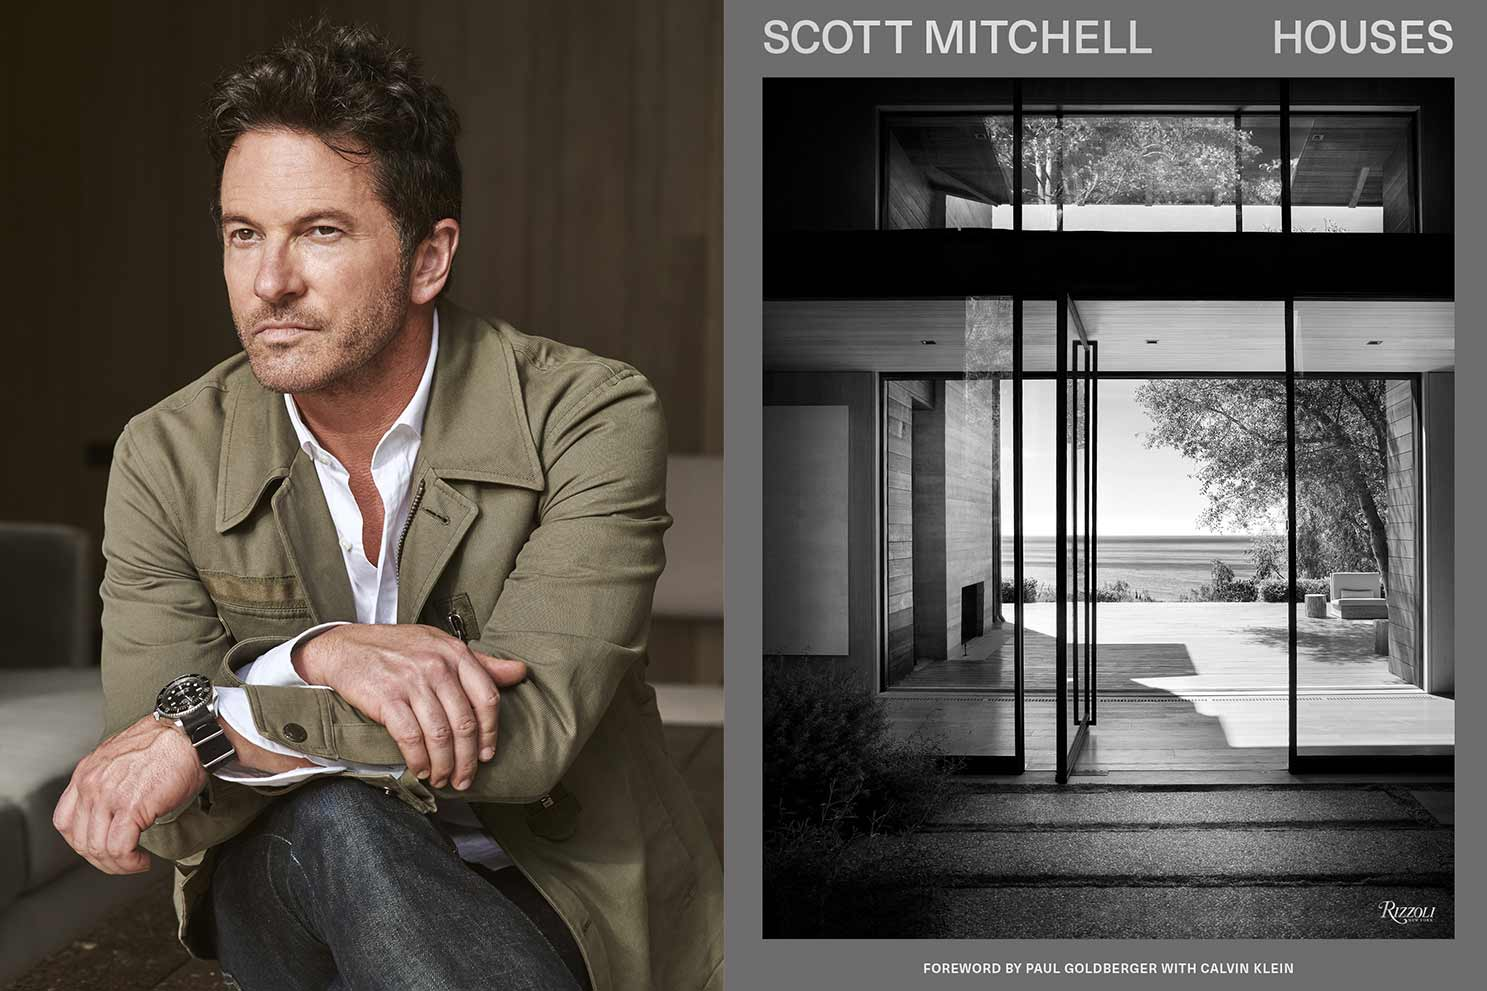 Scott Mitchell Houses, an elegant and iconic monograph